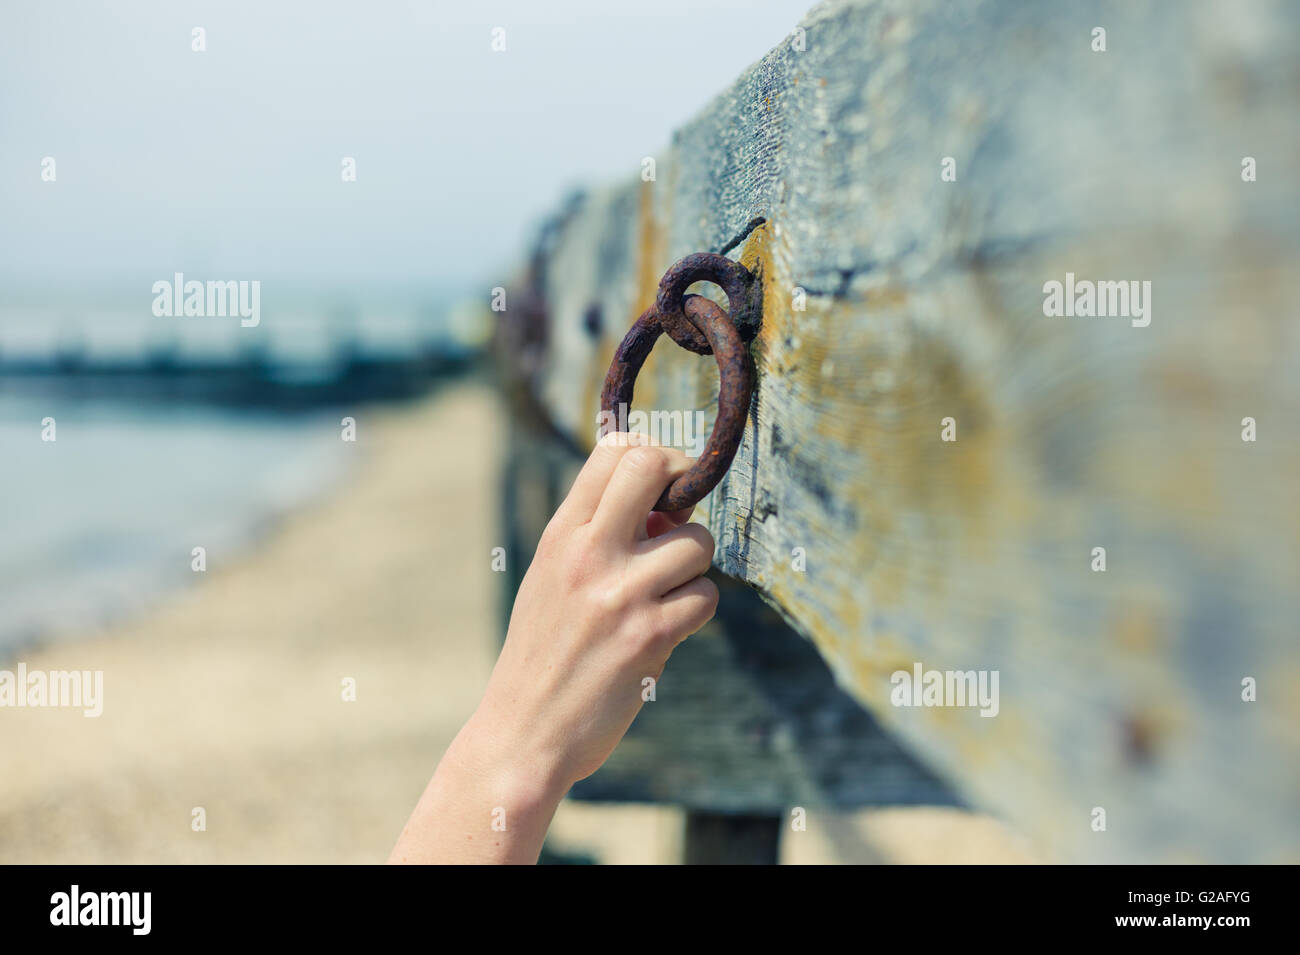 A young female hand is grabbing an old rusty chain attached to a wooden beam - Stock Image